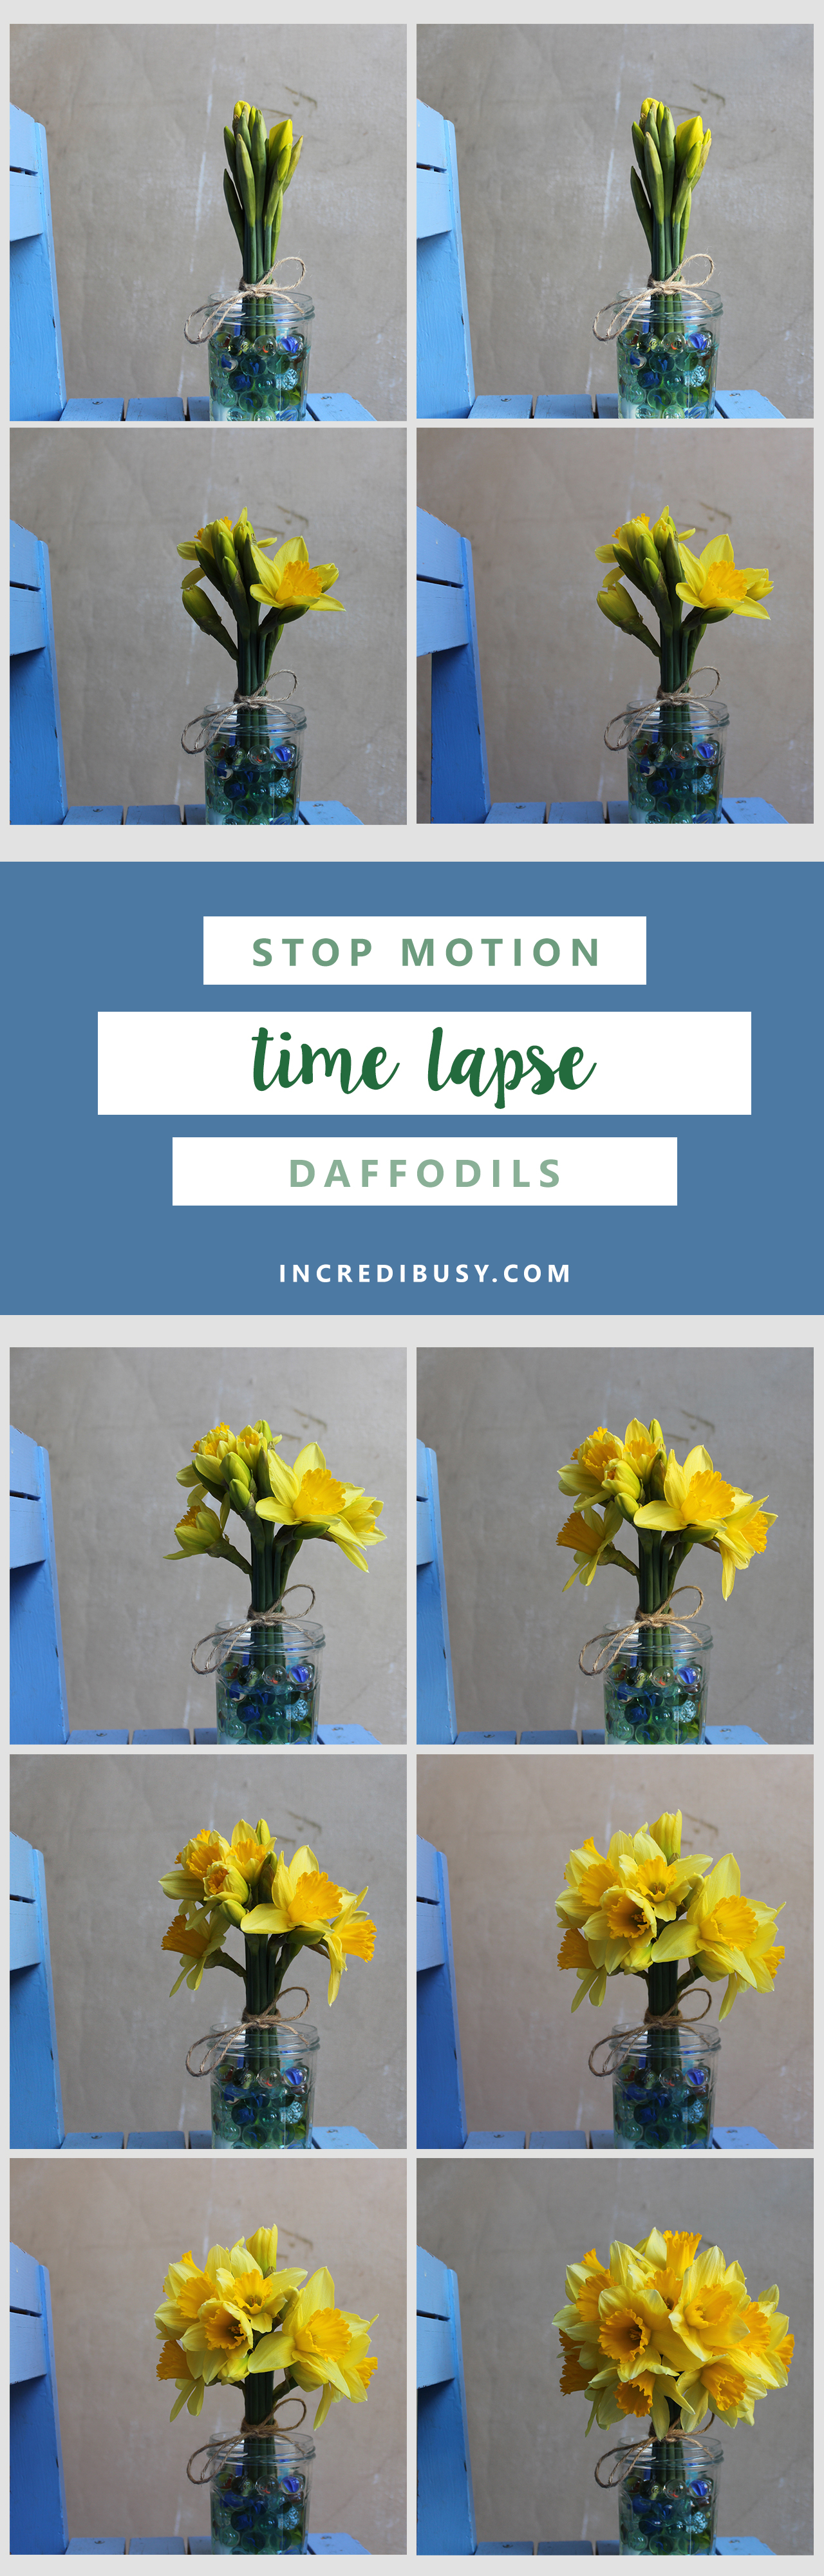 Daffodils-Incredibusy-pinterest